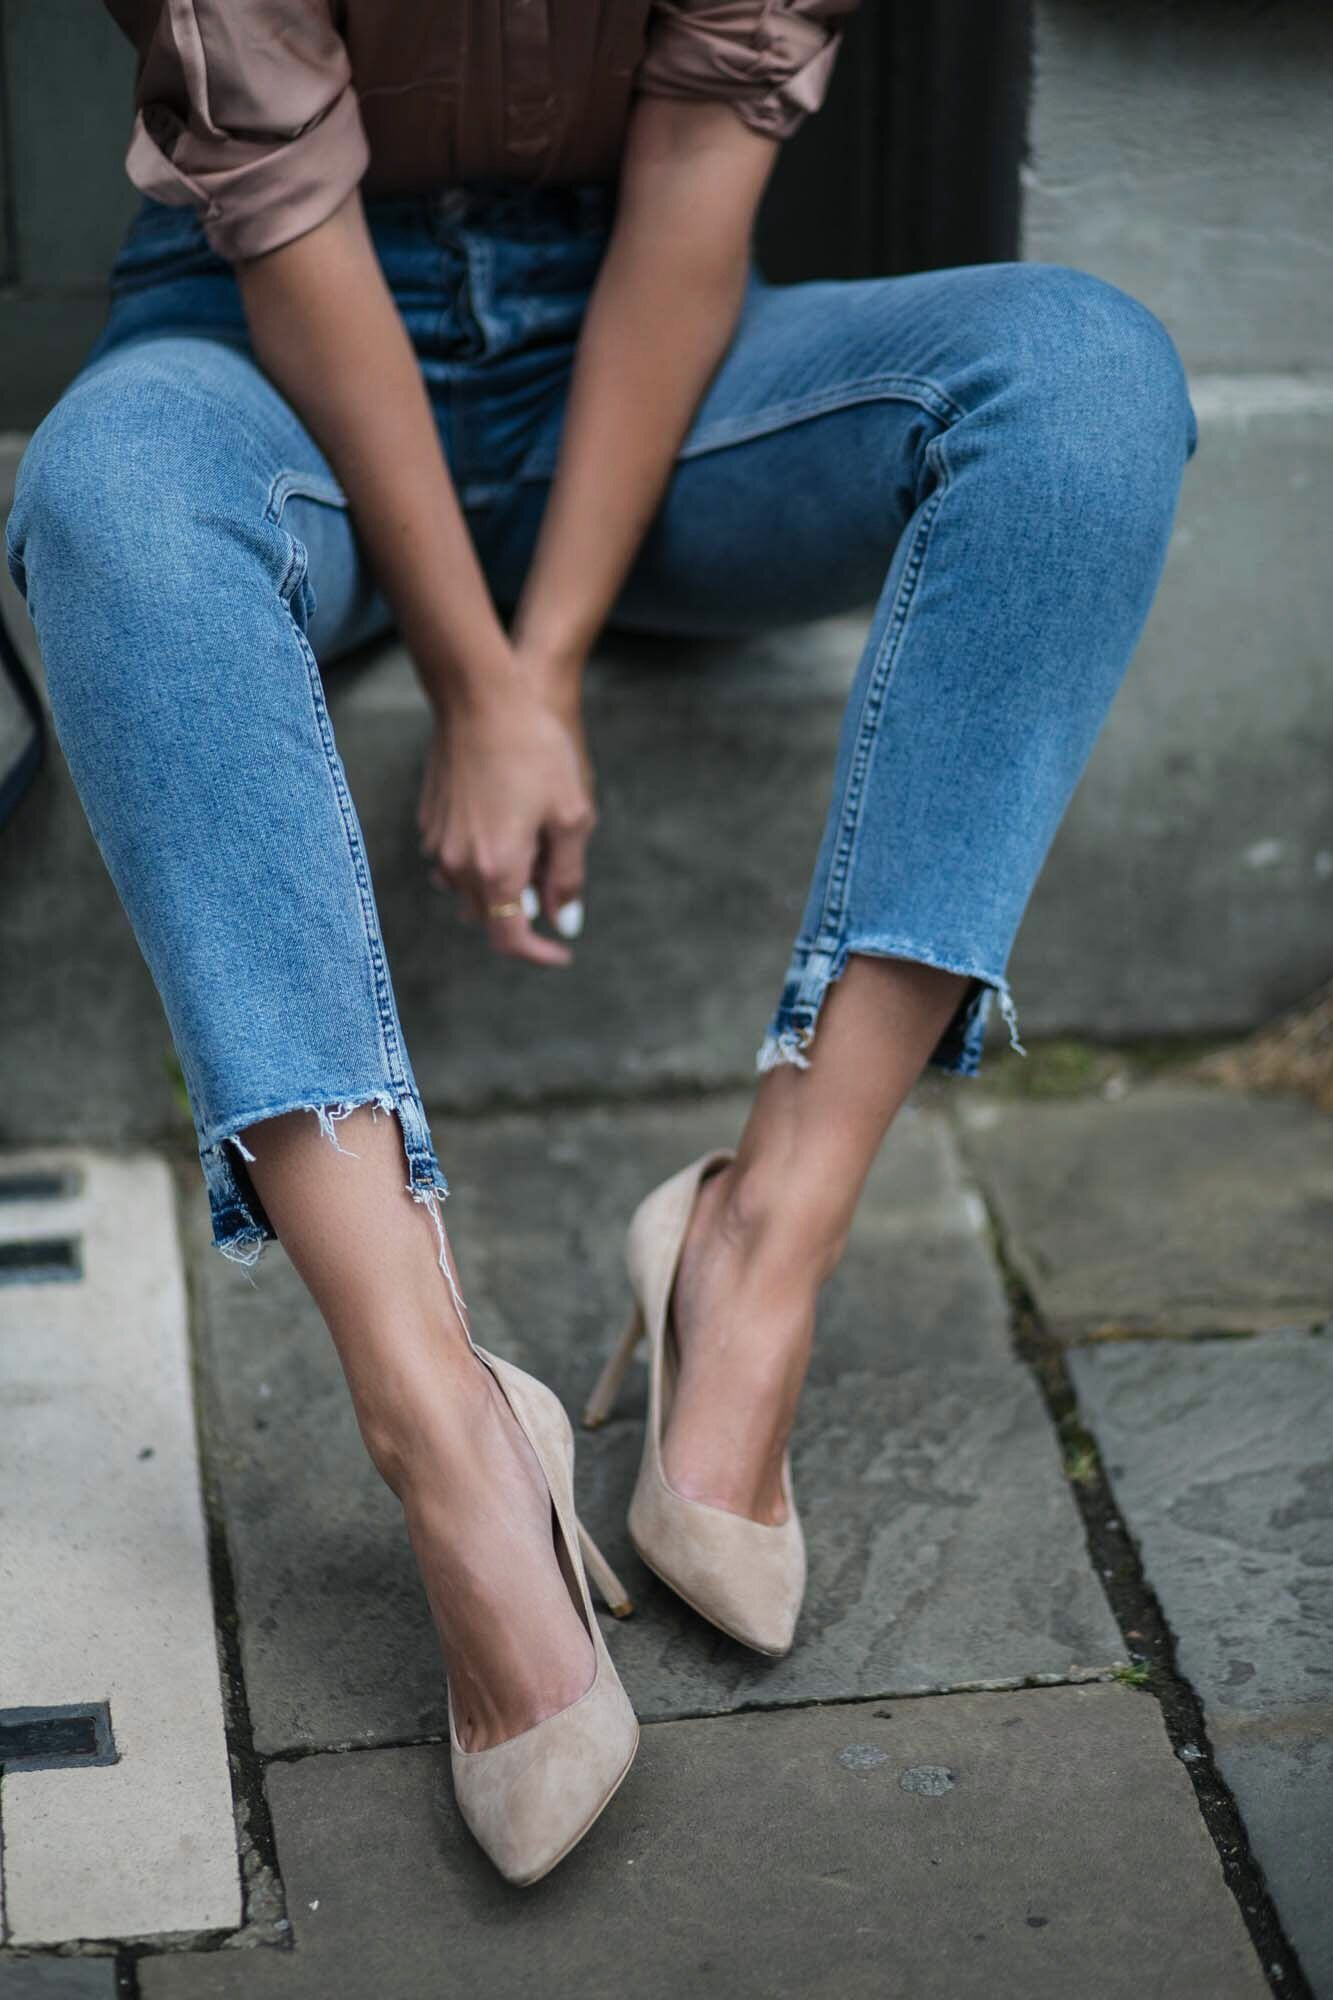 96b55fe7ce DIY Cut-off Jeans in 2019 | Style | Fashion, Fashion outfits, Cut ...